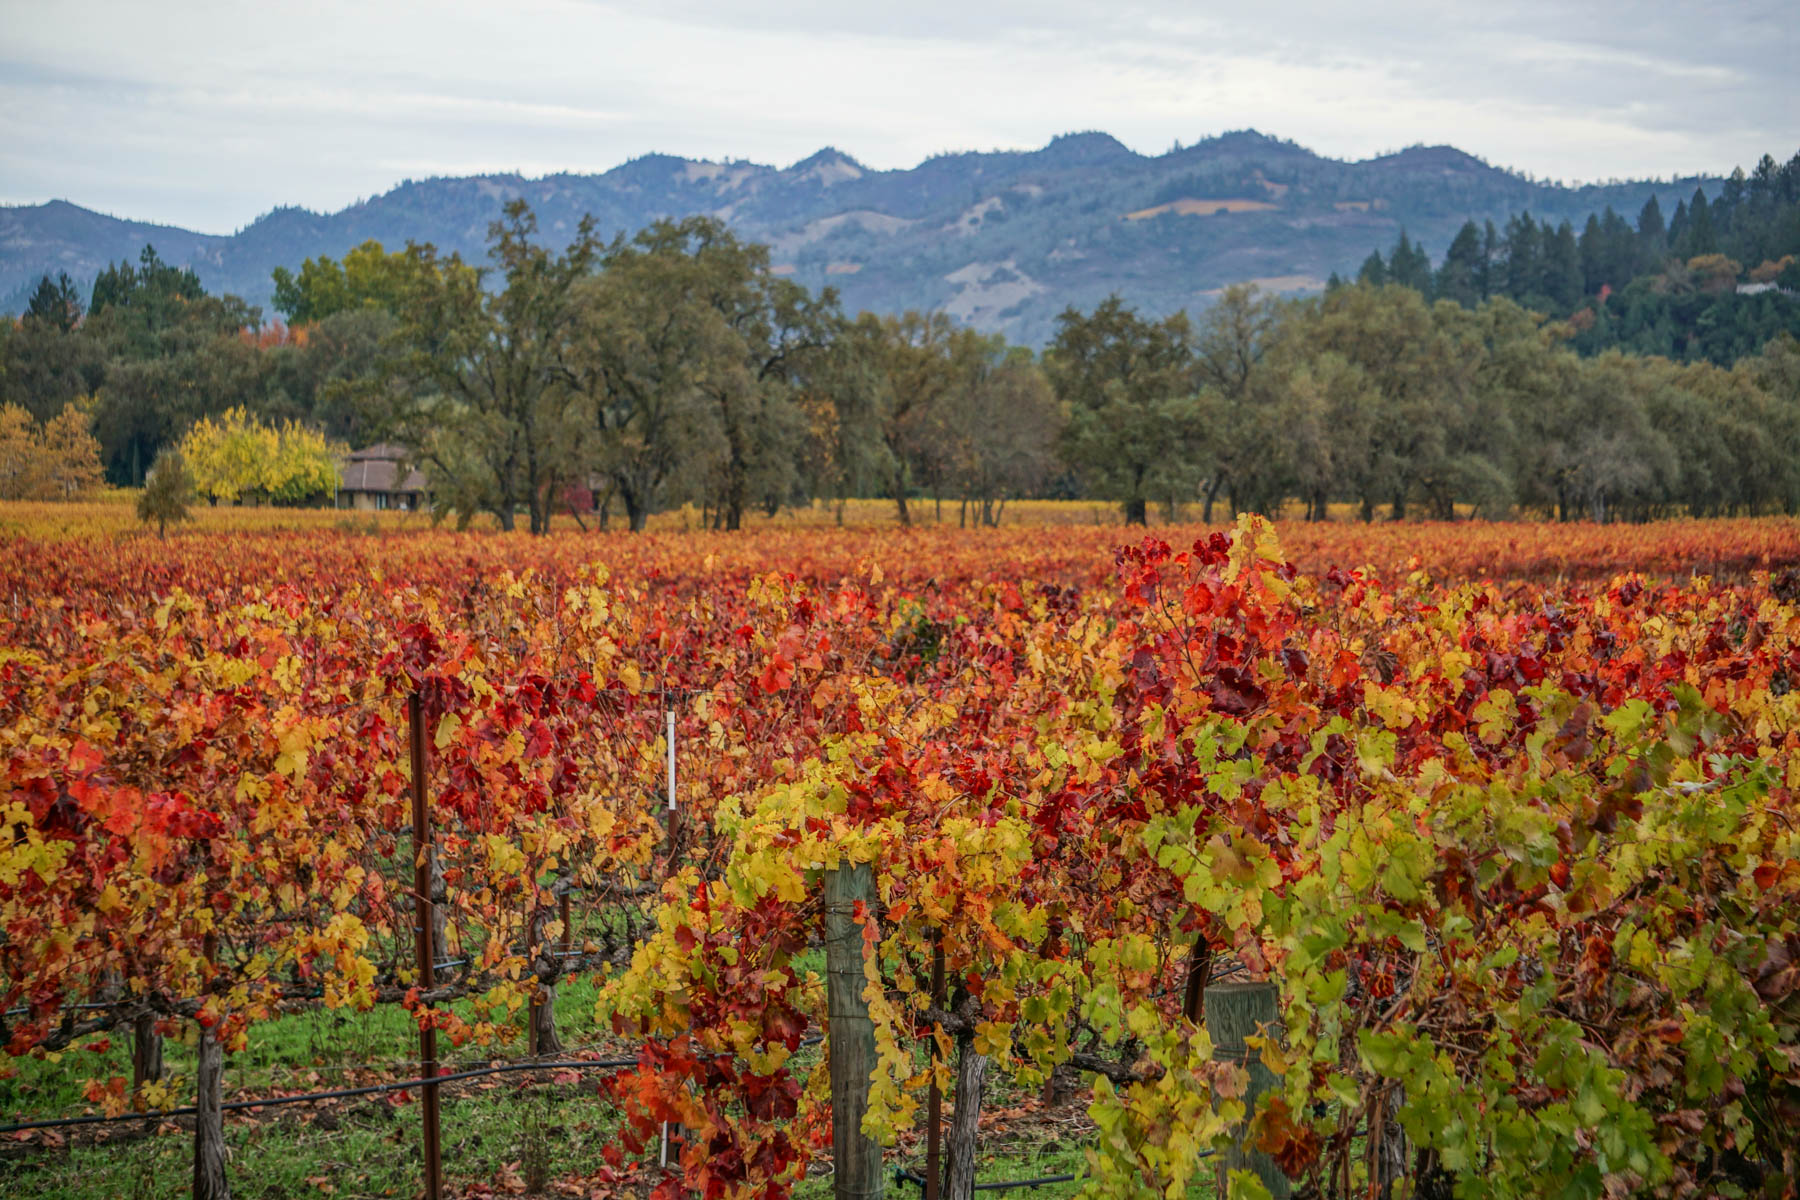 Red Napa Valley Vineyards in fall surrounded by trees and mountains